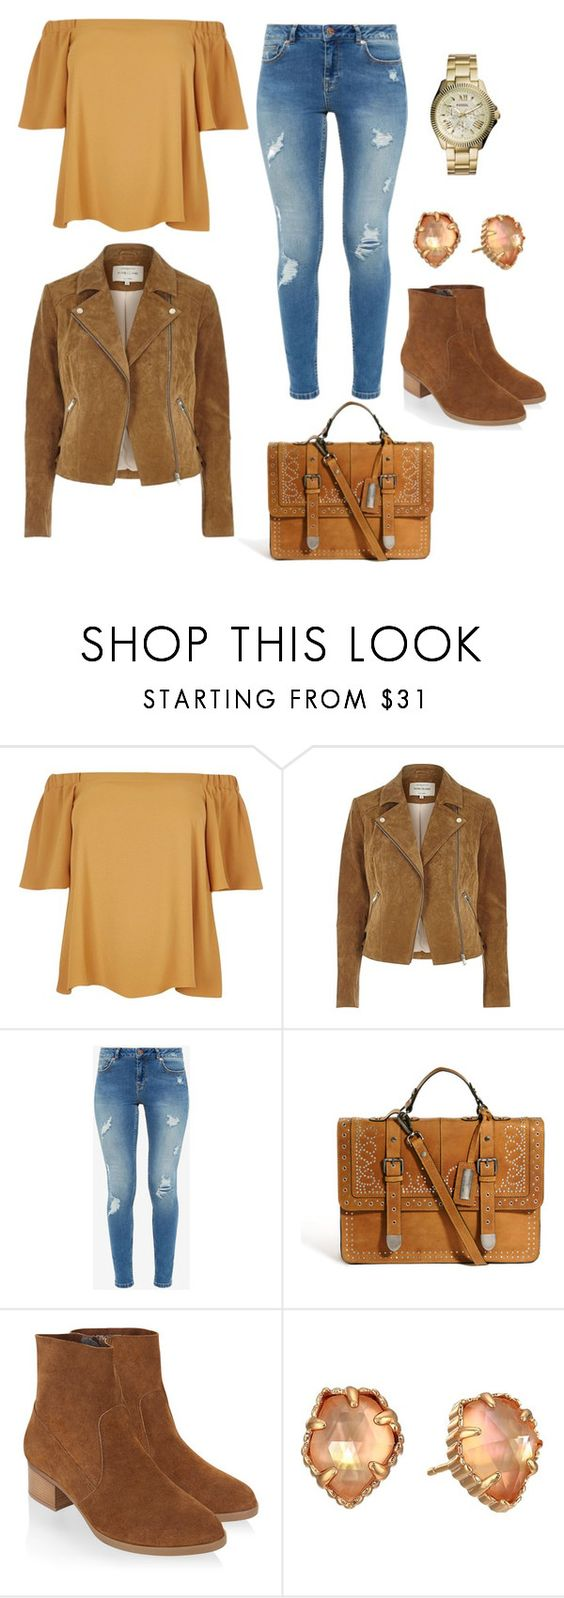 """Untitled #9536"" by beatrizibelo ❤ liked on Polyvore featuring River Island, Ted Baker, Monsoon, Kendra Scott and FOSSIL"